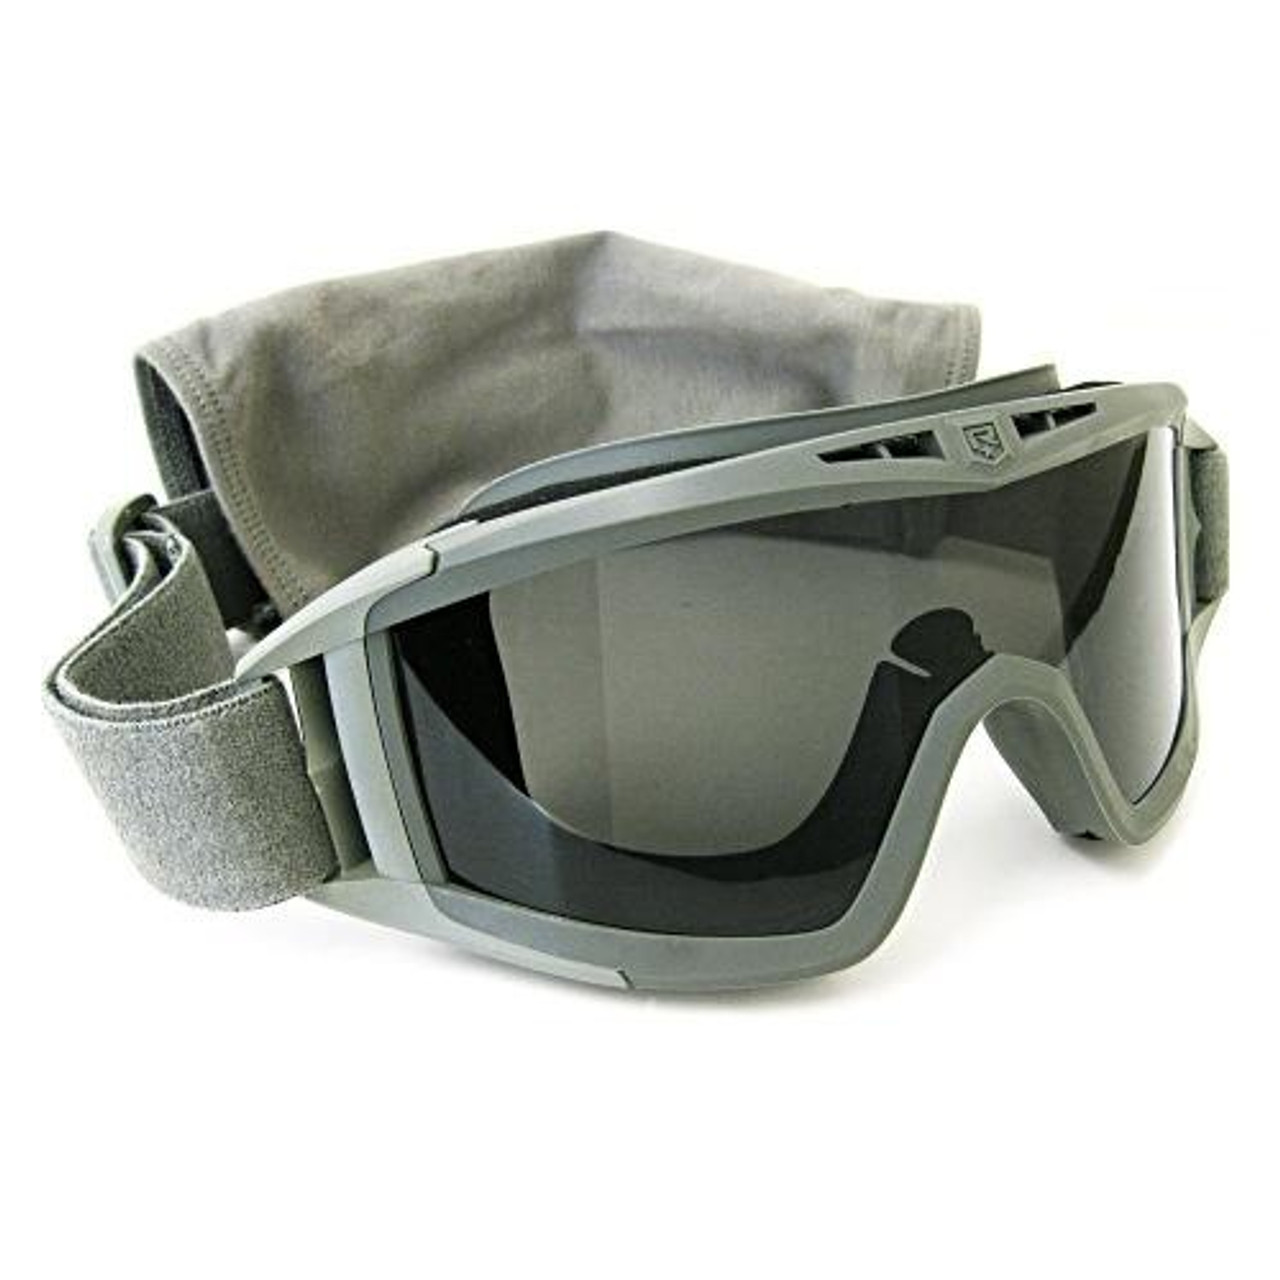 REVISION DESERT LOCUST MILITARY GOGGLES EYE PRO CLEAR & DARK LENS KIT FOLIAGE